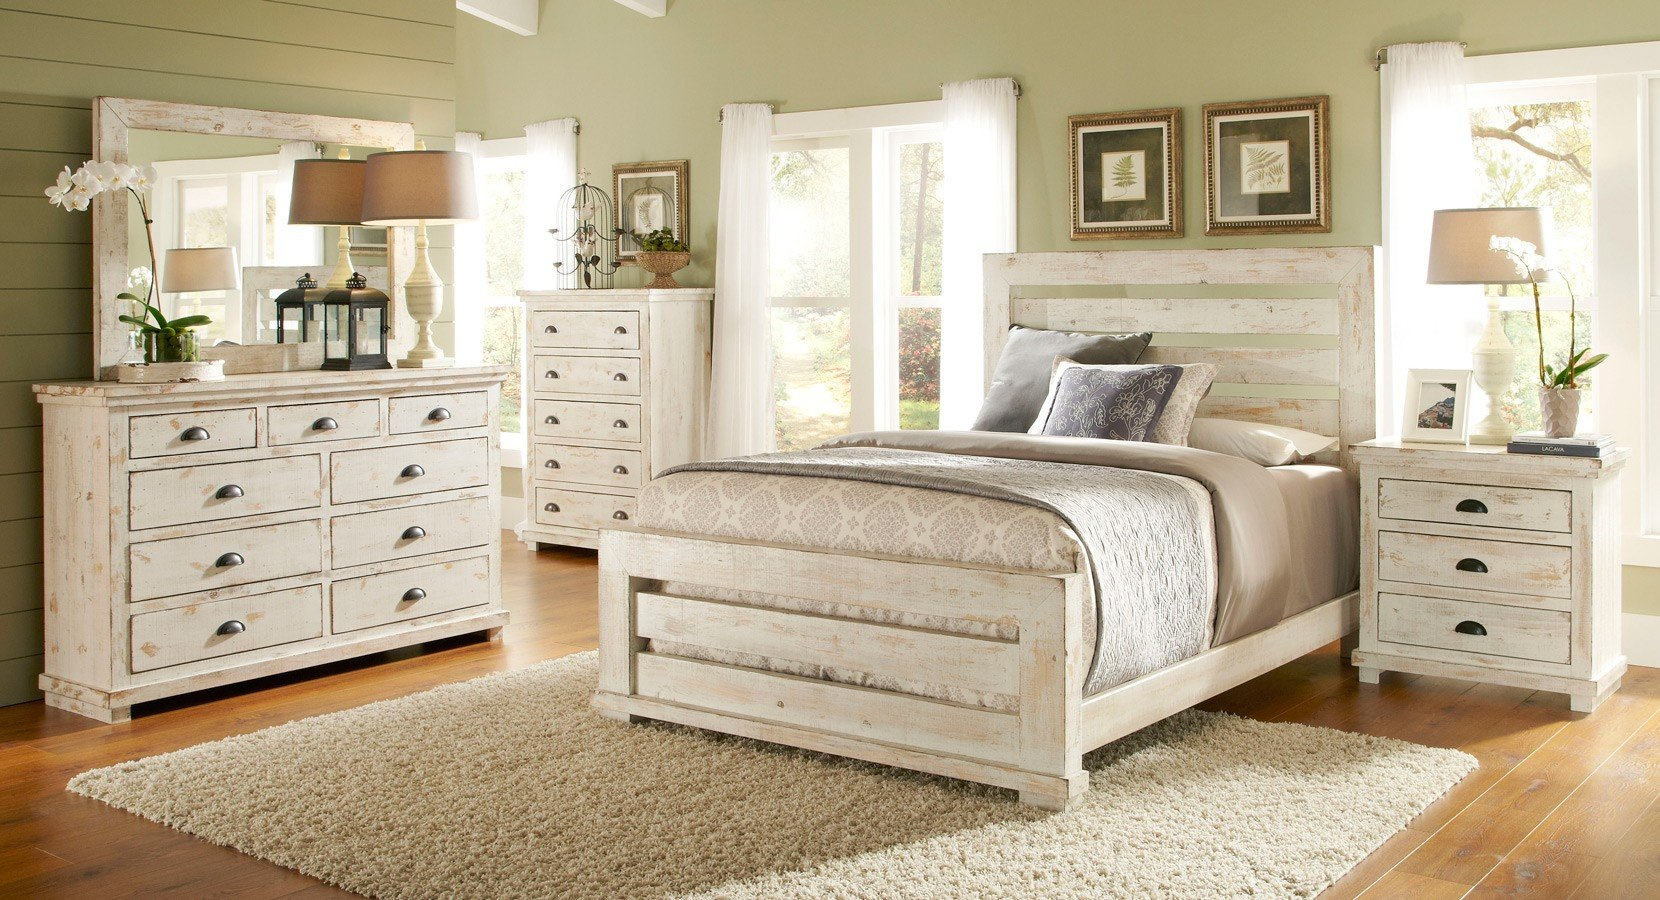 Willow Slat Bedroom Set Distressed White Progressive Furniture 14